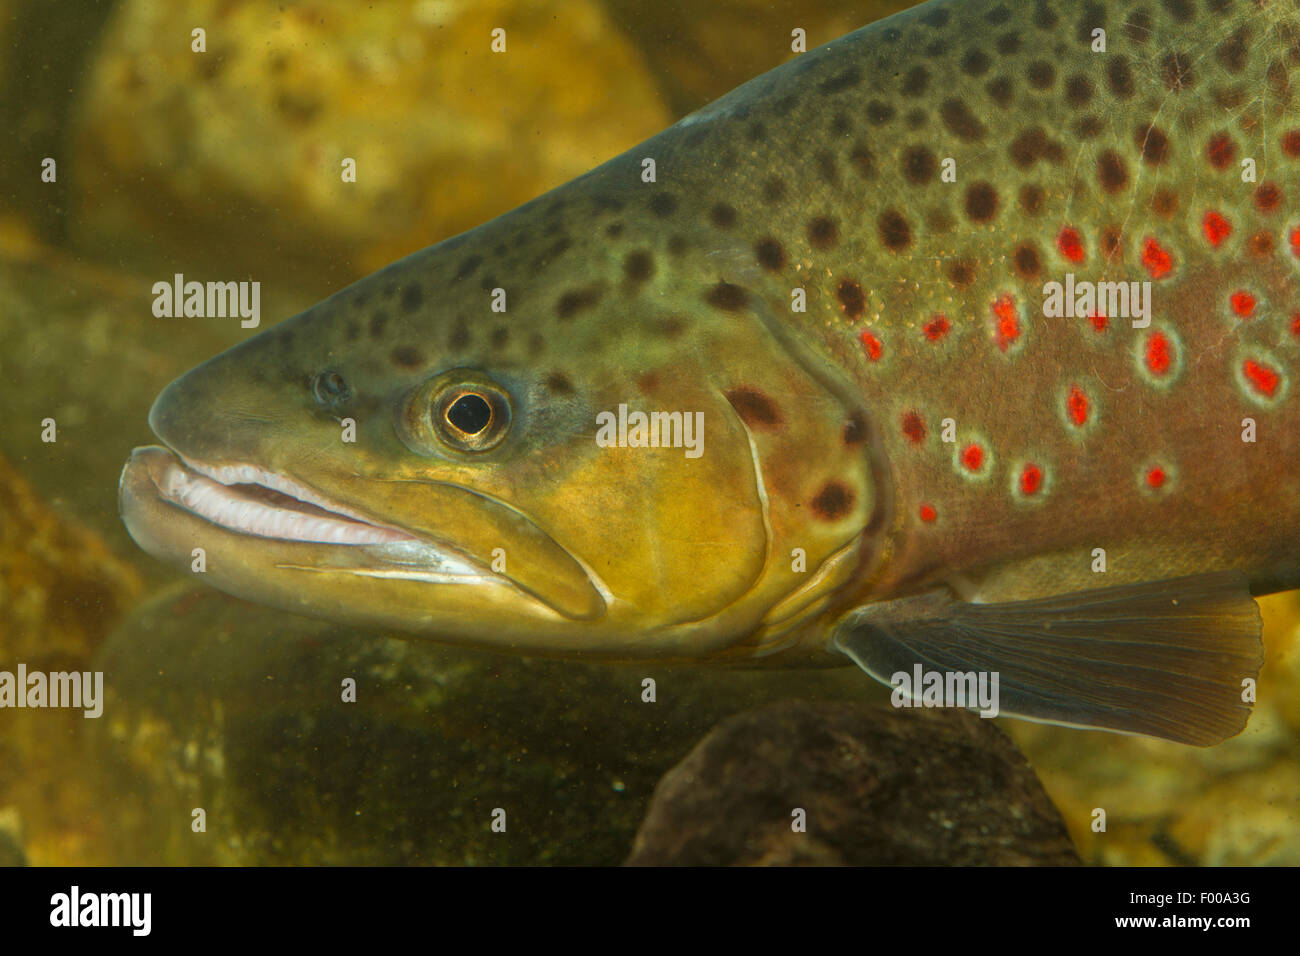 brown trout, river trout, brook trout (Salmo trutta fario), male, portrait, Germany, Bavaria Stock Photo